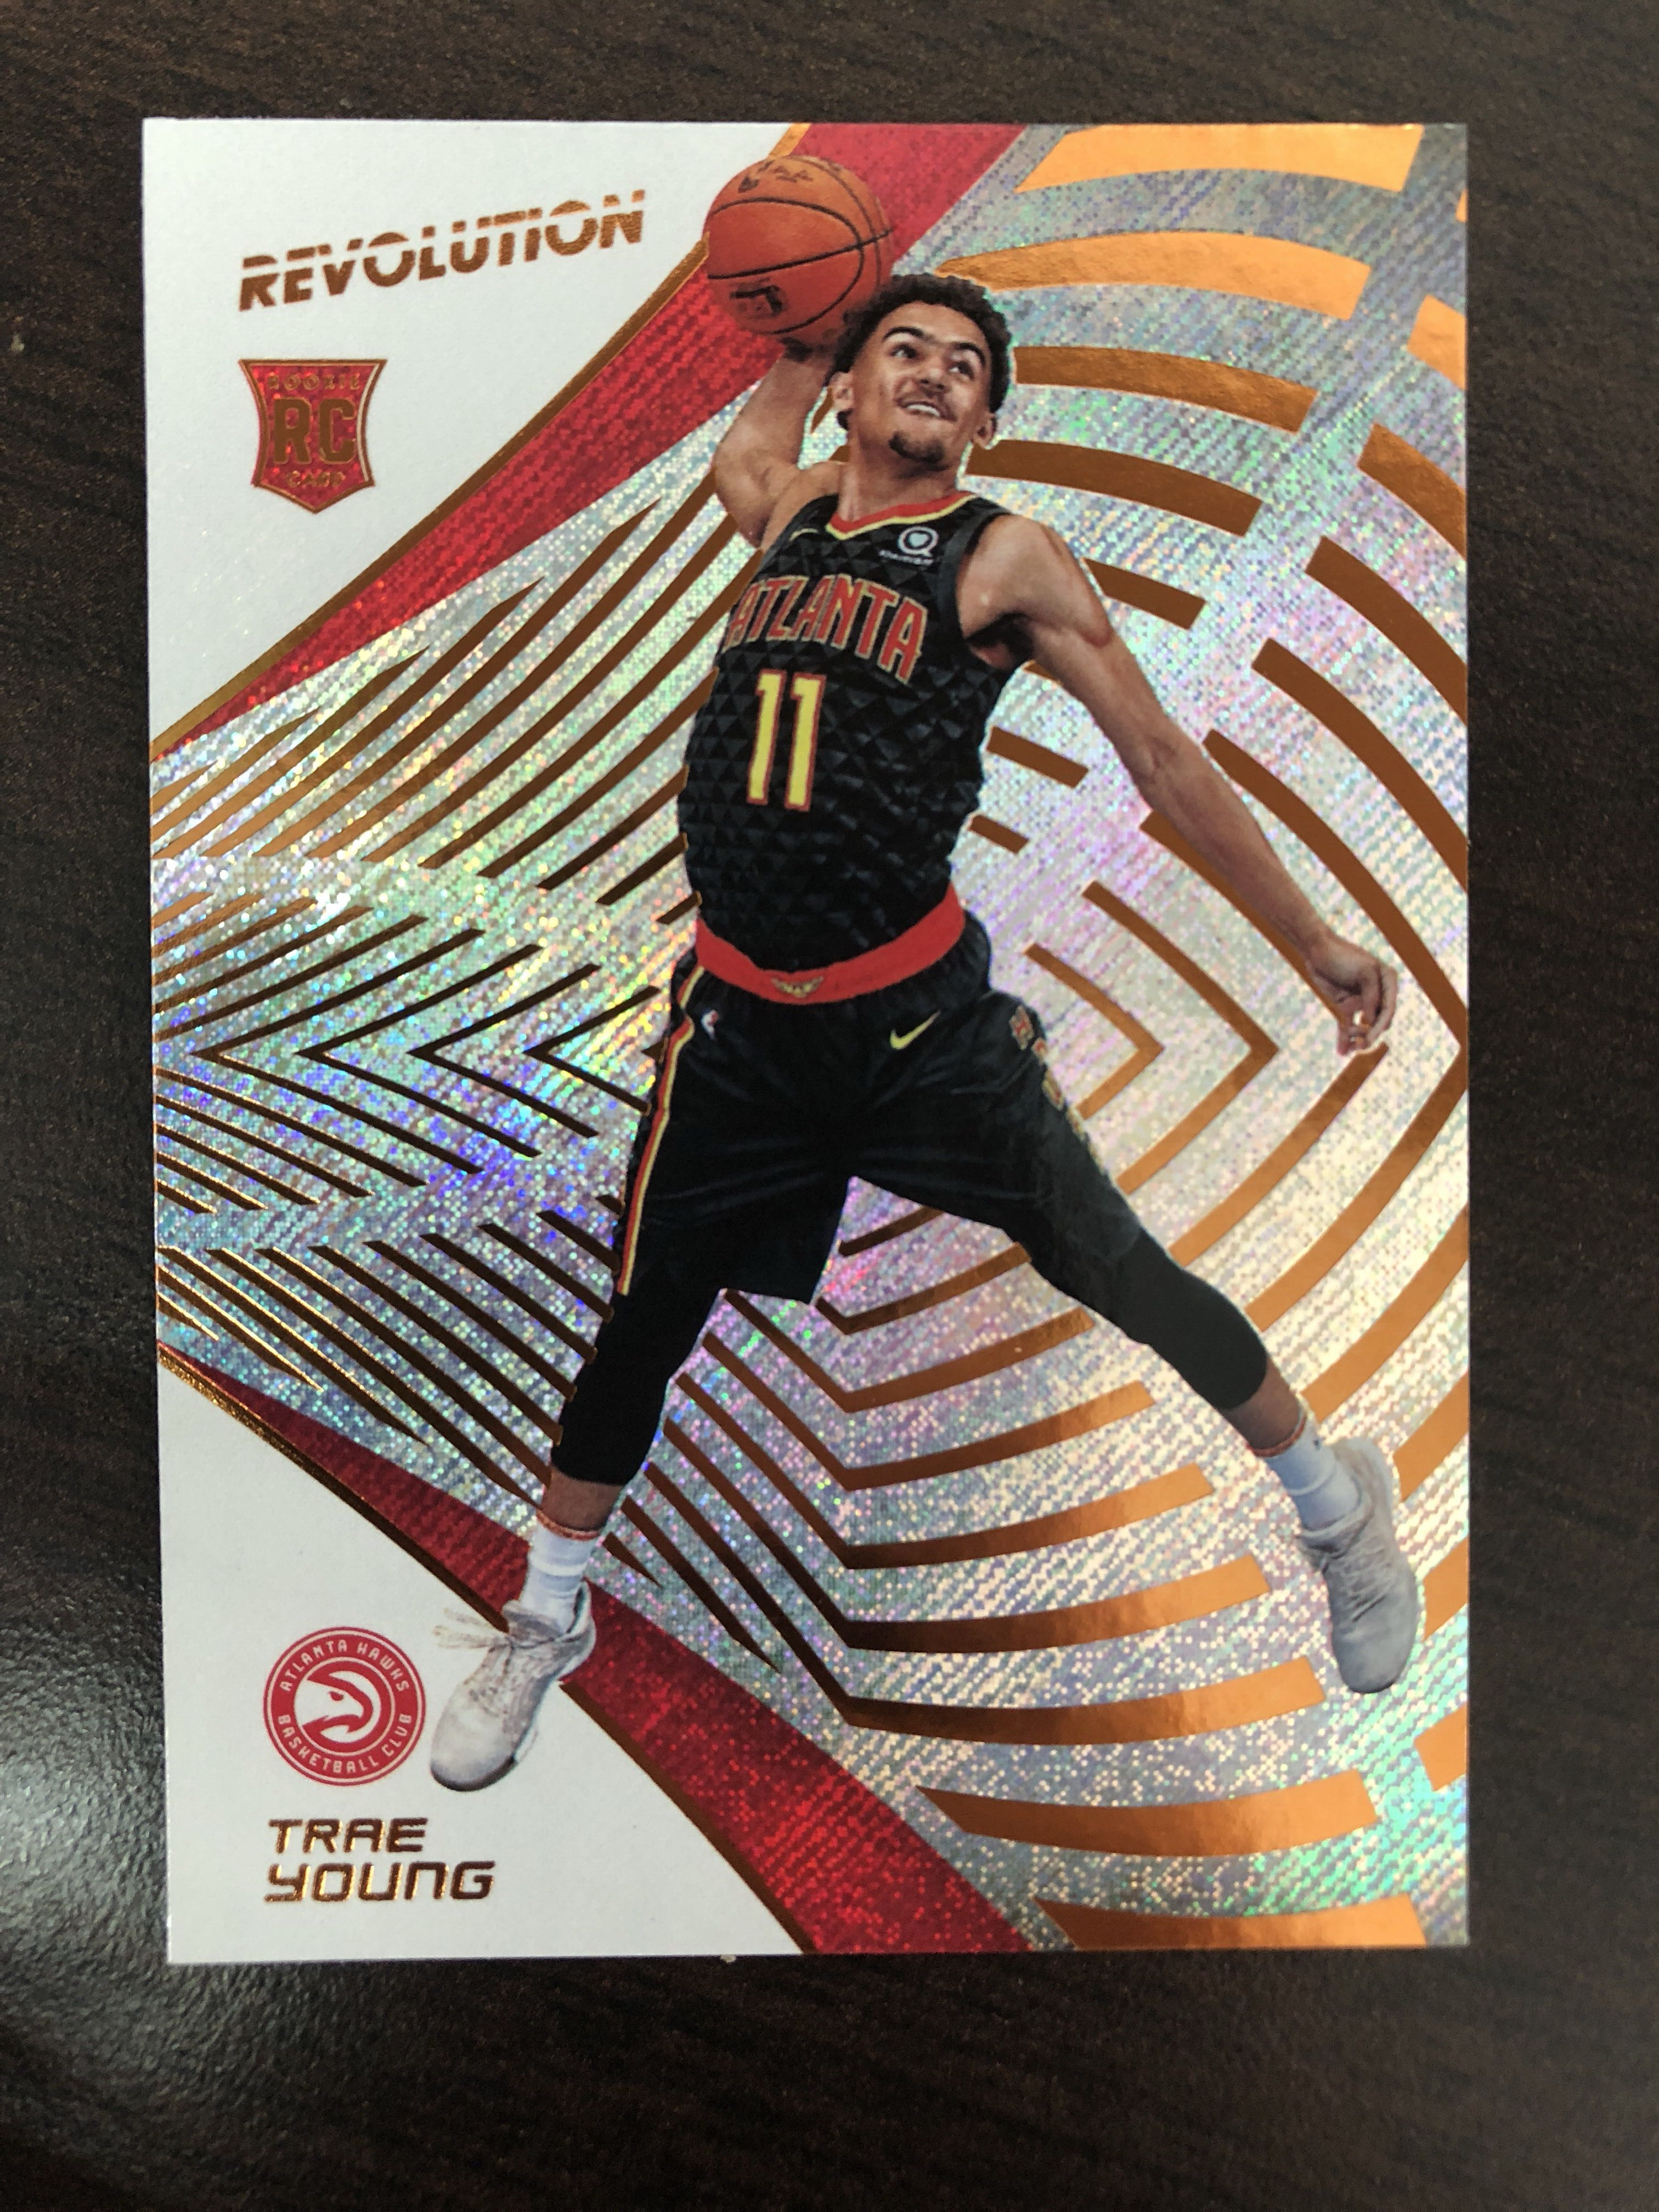 Trae Young 2018 19 Nba Panini Revolution Base Rookie Card